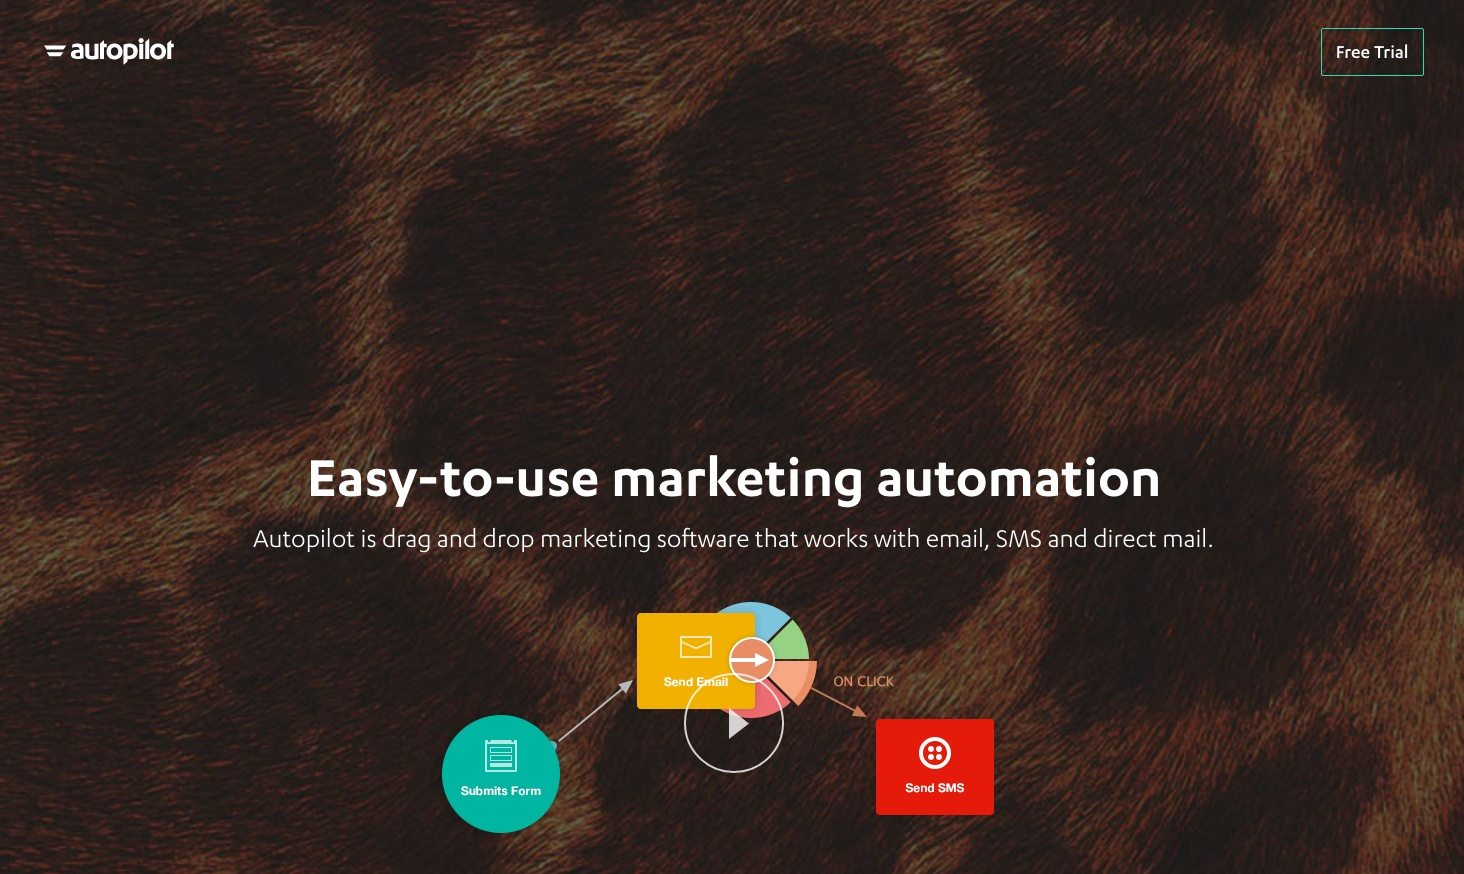 This picture shows marketers how Autopilot uses a click-through landing page to generate free trial sign ups.